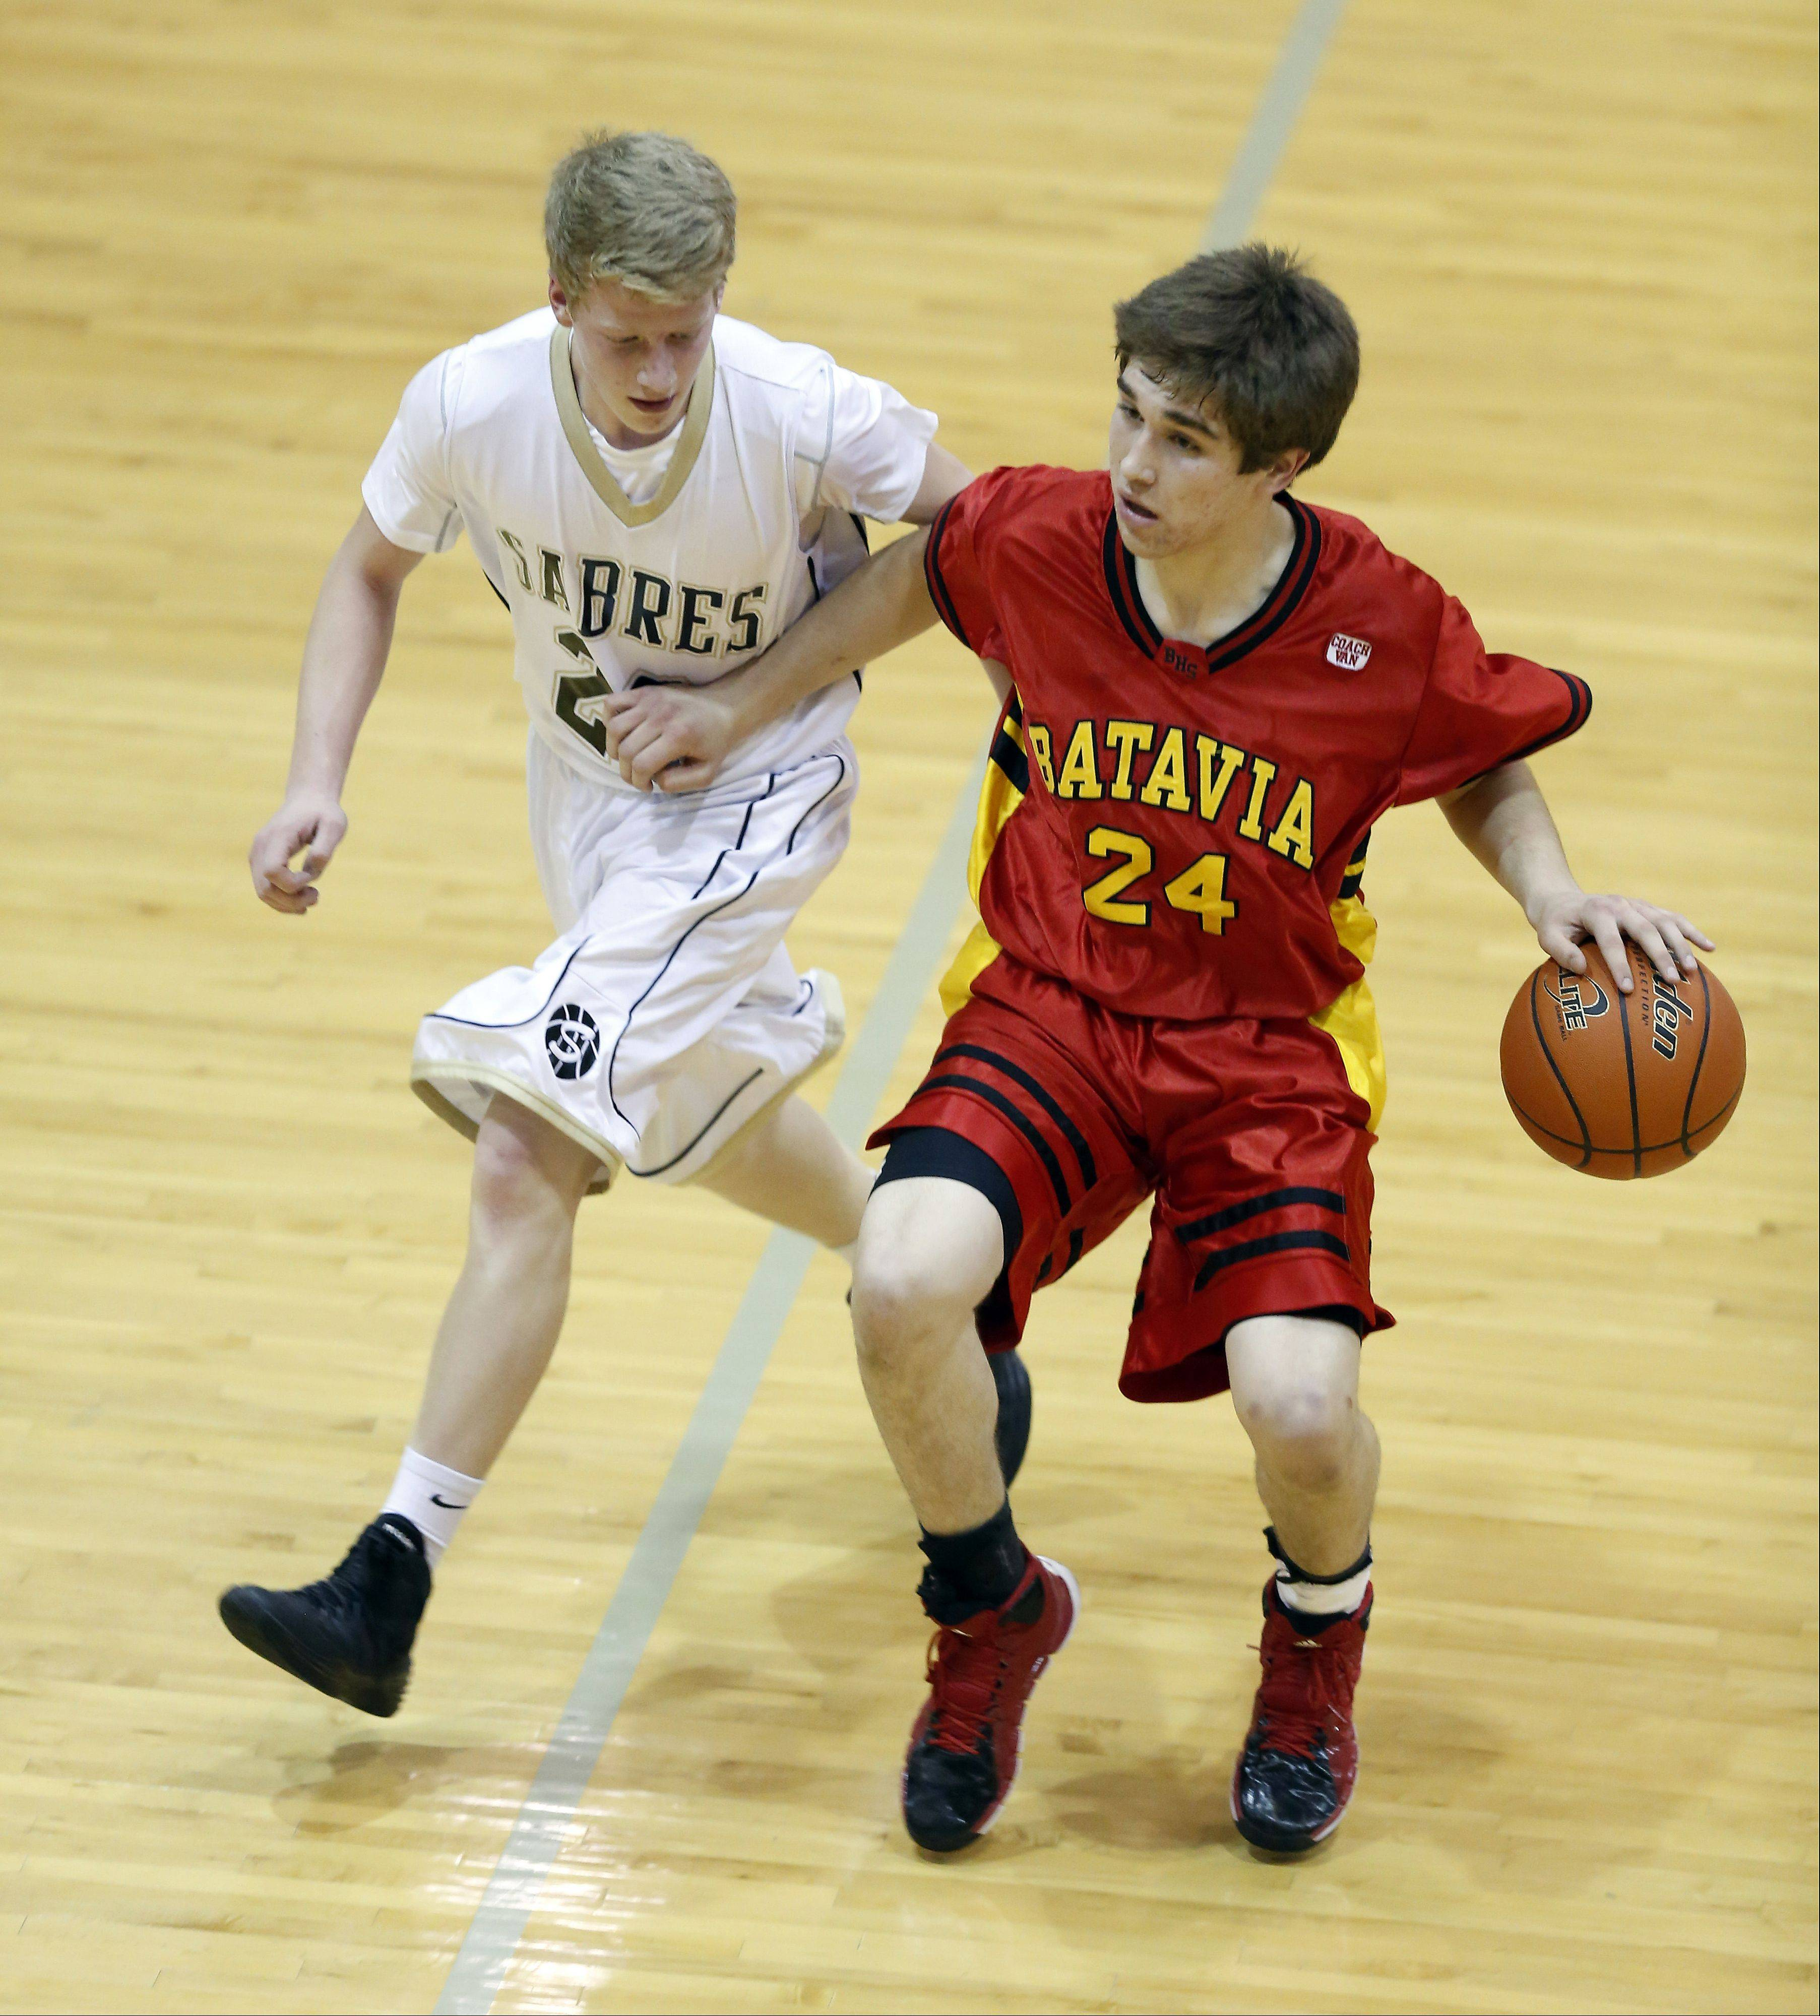 Images from the Batavia vs. Streamwood boys basketball game Friday, January 10, 2014.